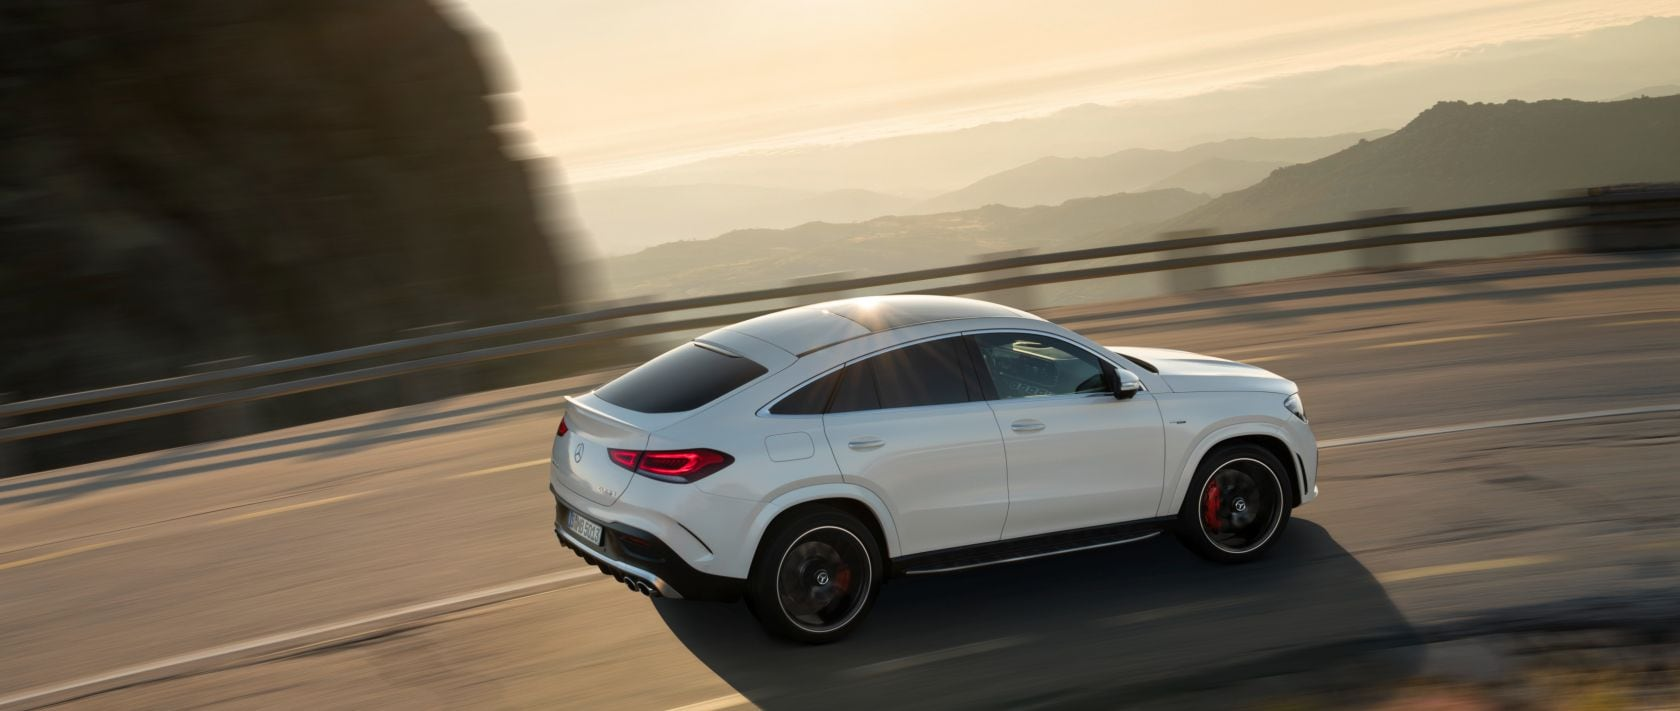 Side view: The new 2020 Mercedes-AMG GLE 53 4MATIC+ Coupé (C 167) in designo diamond white bright on a country road.